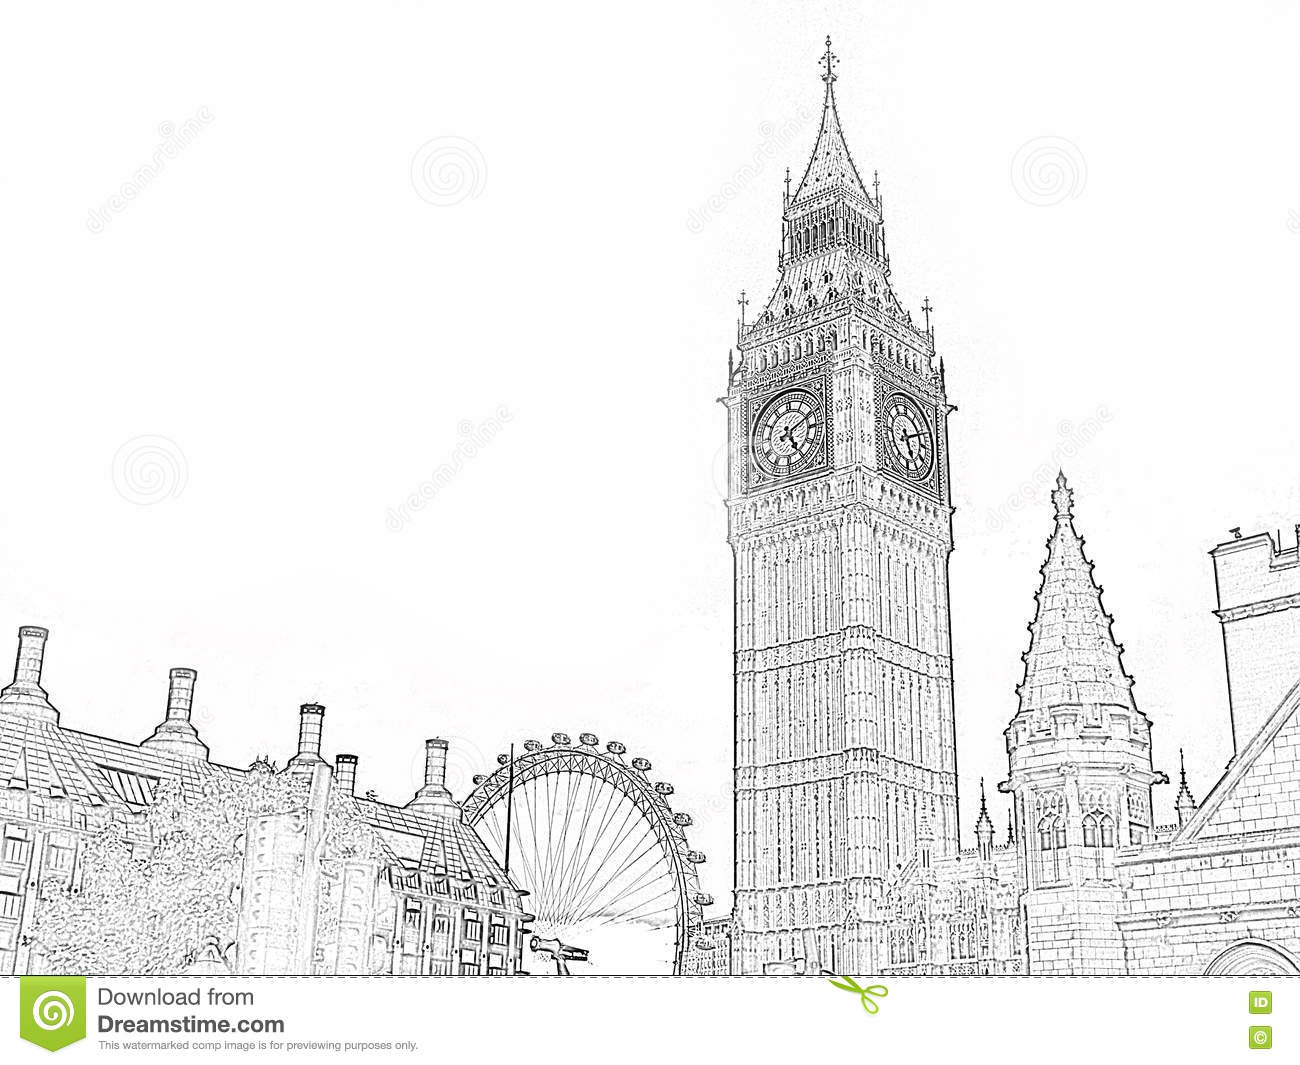 Big ben sketch in black and white